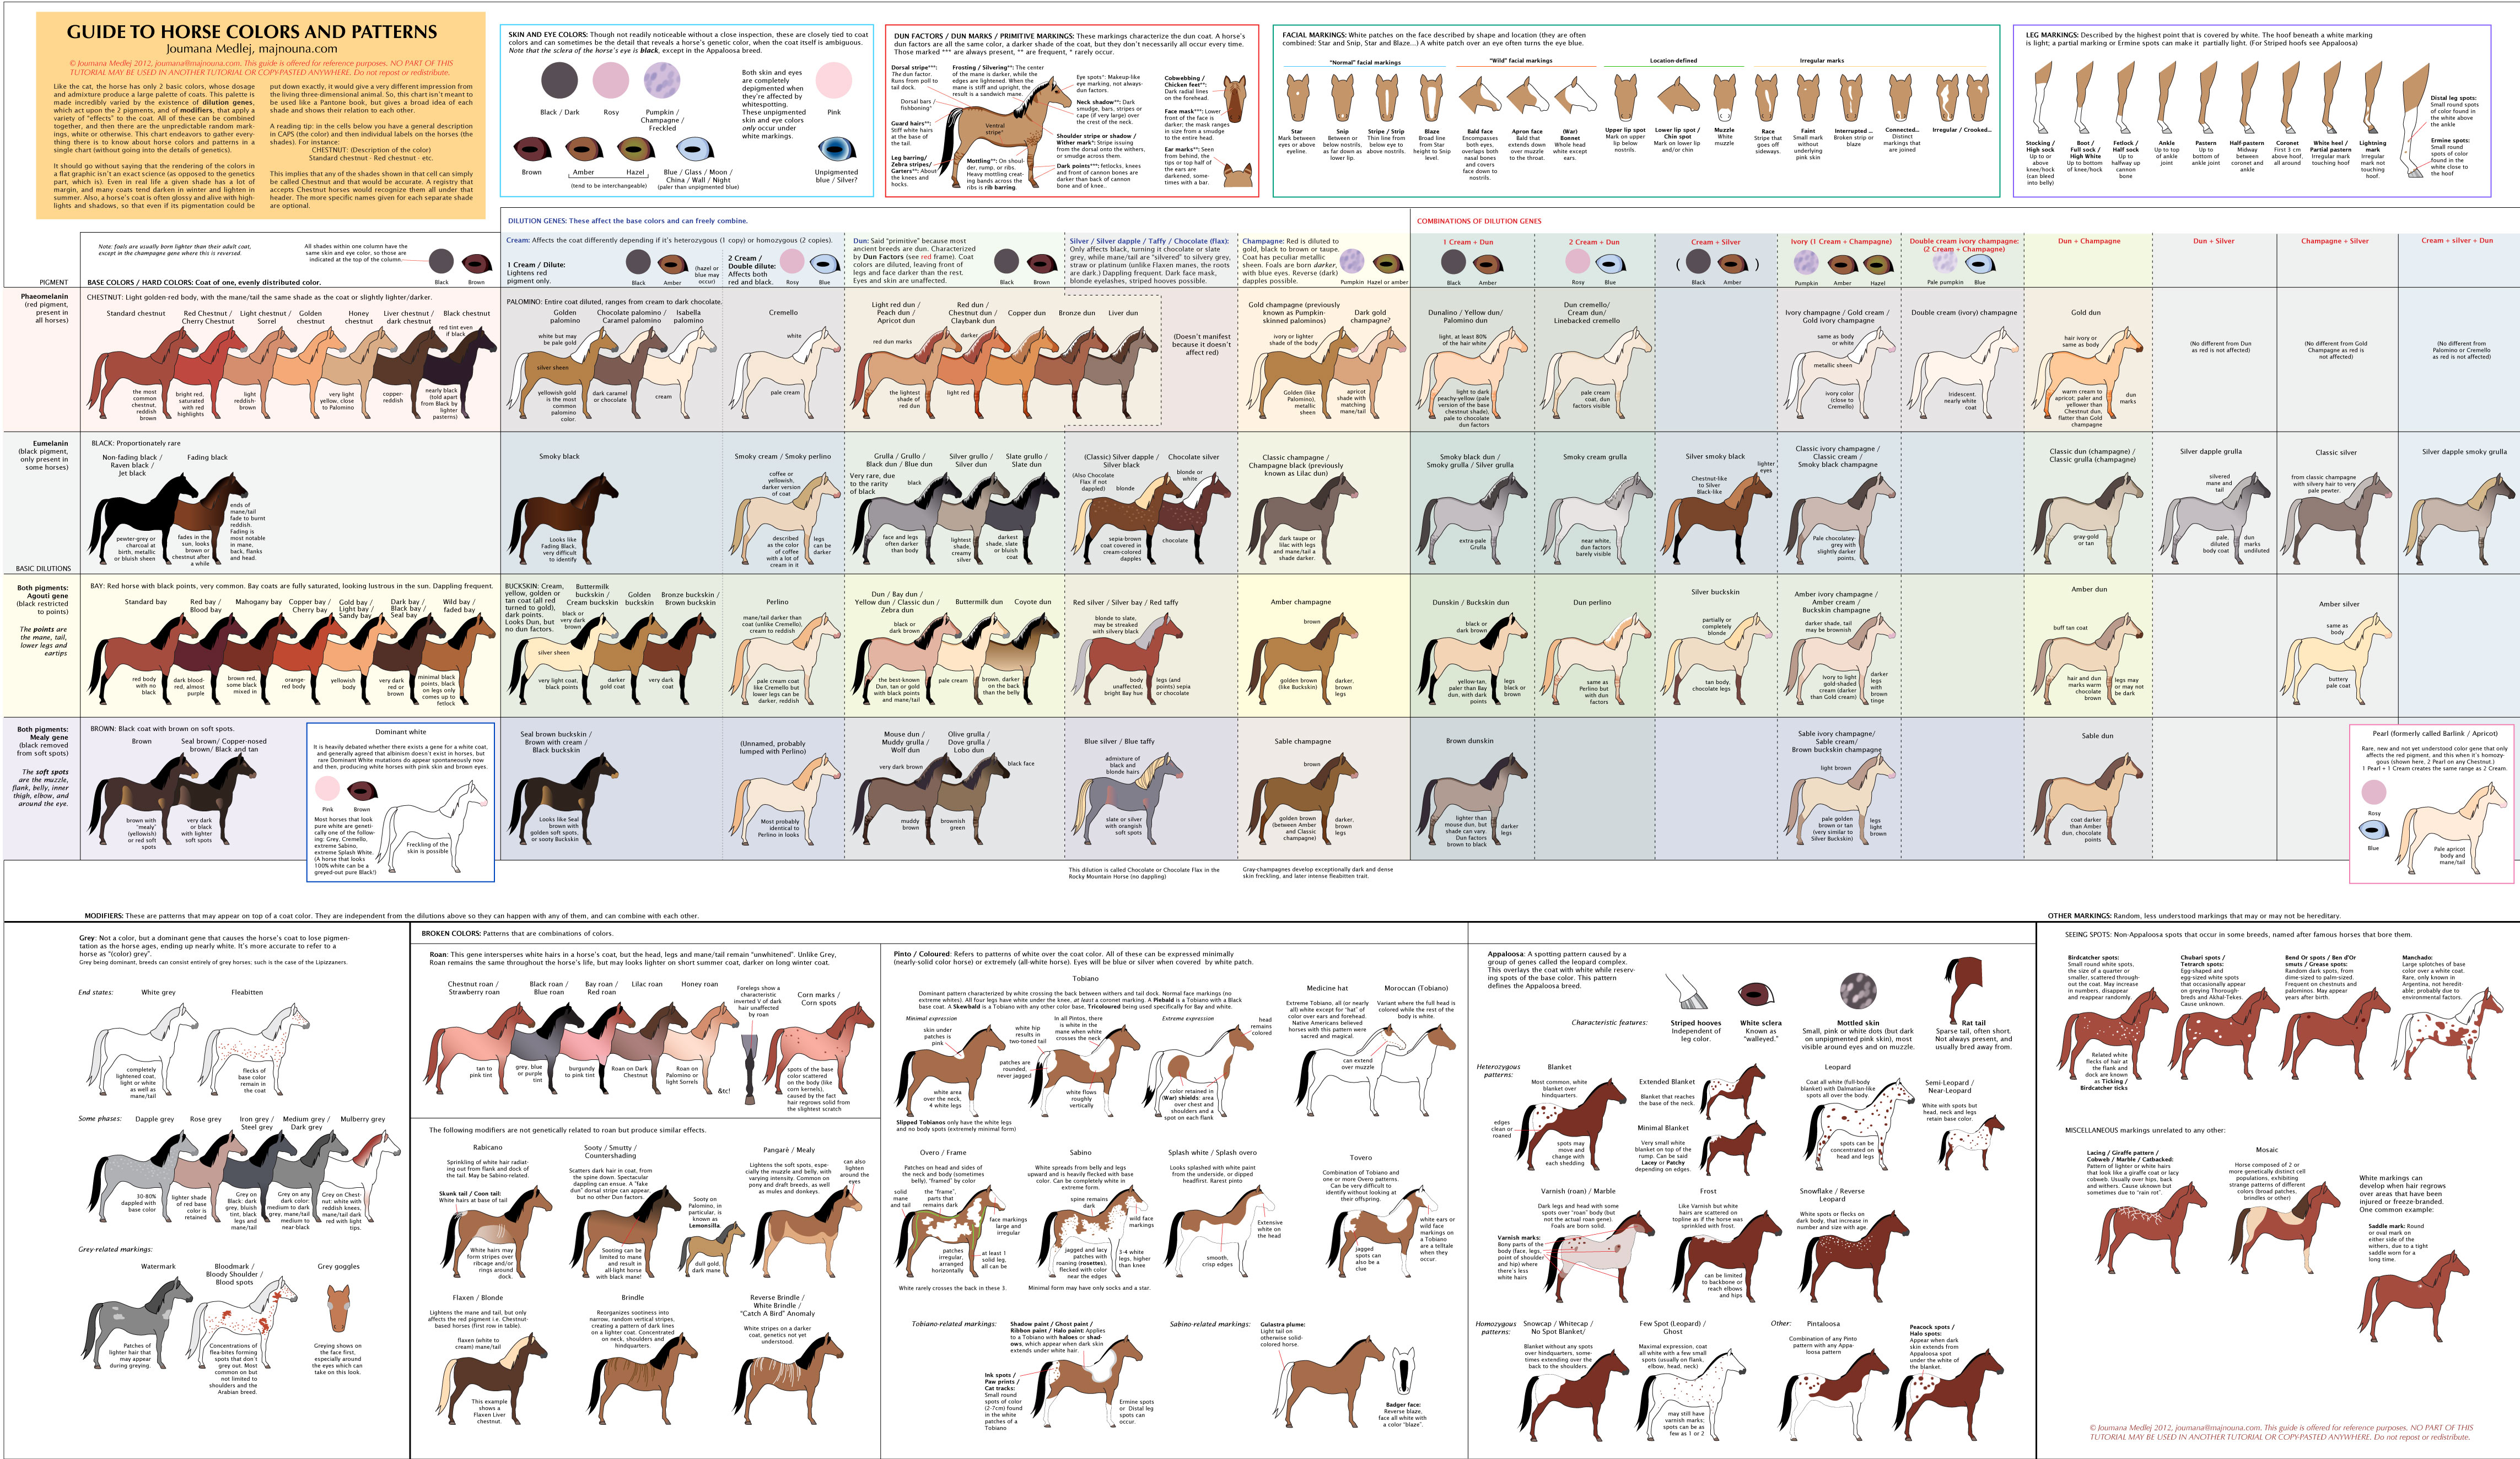 Unique Color Names guide to horse colors and patternsmajnouna on deviantart